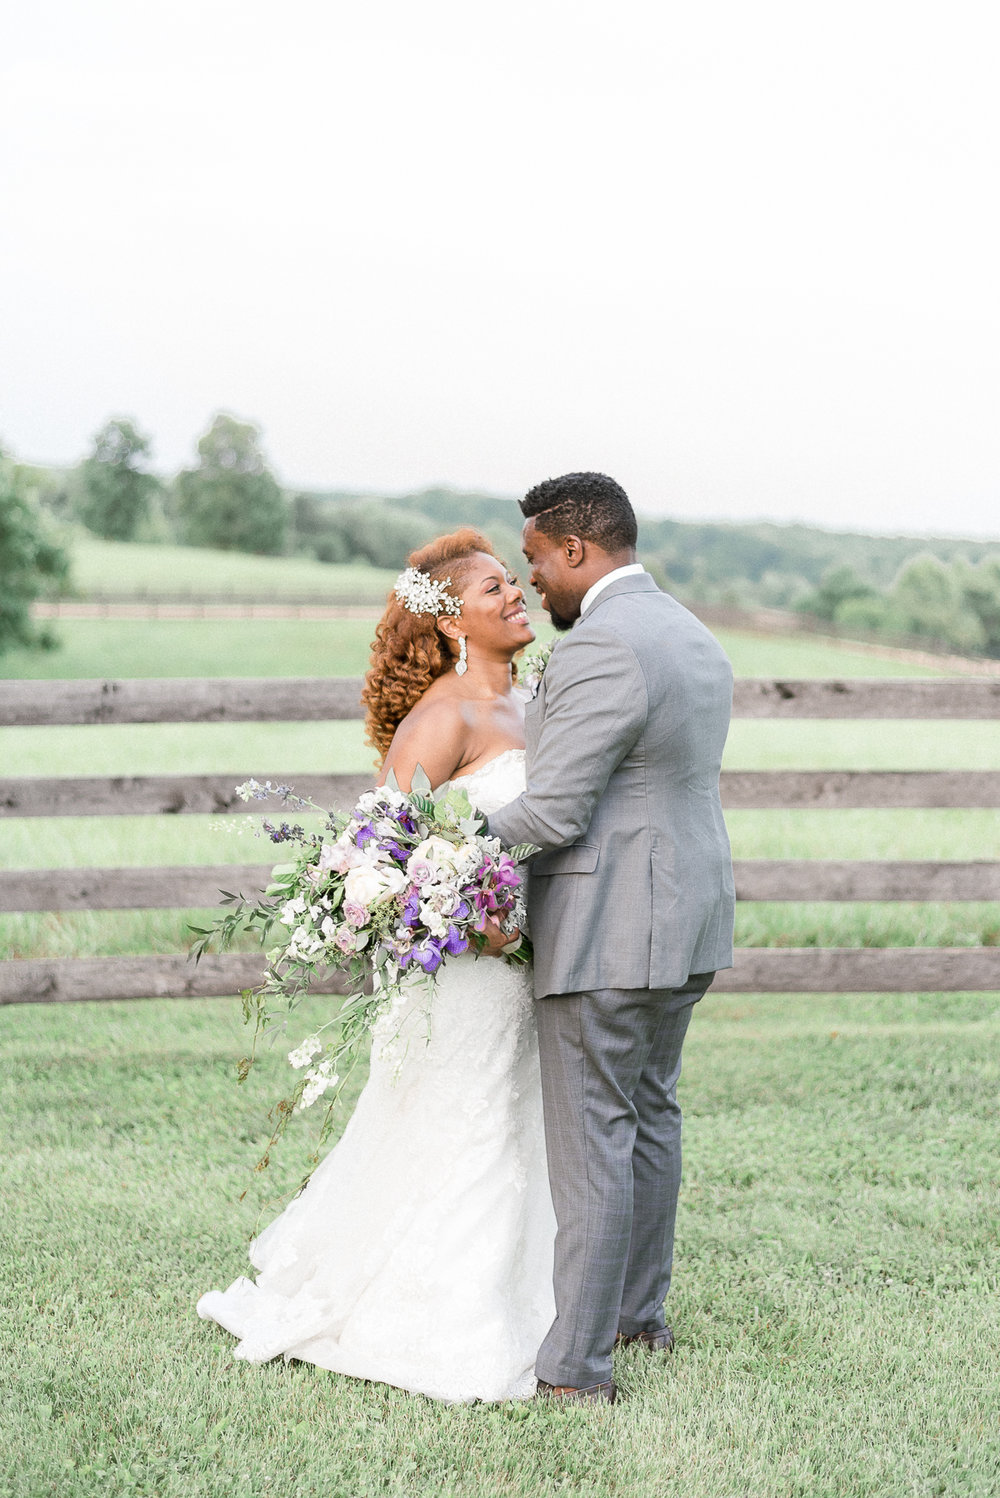 VA-Wedding-Mount-Ida-Farm-Summer-Wedding-77.jpg